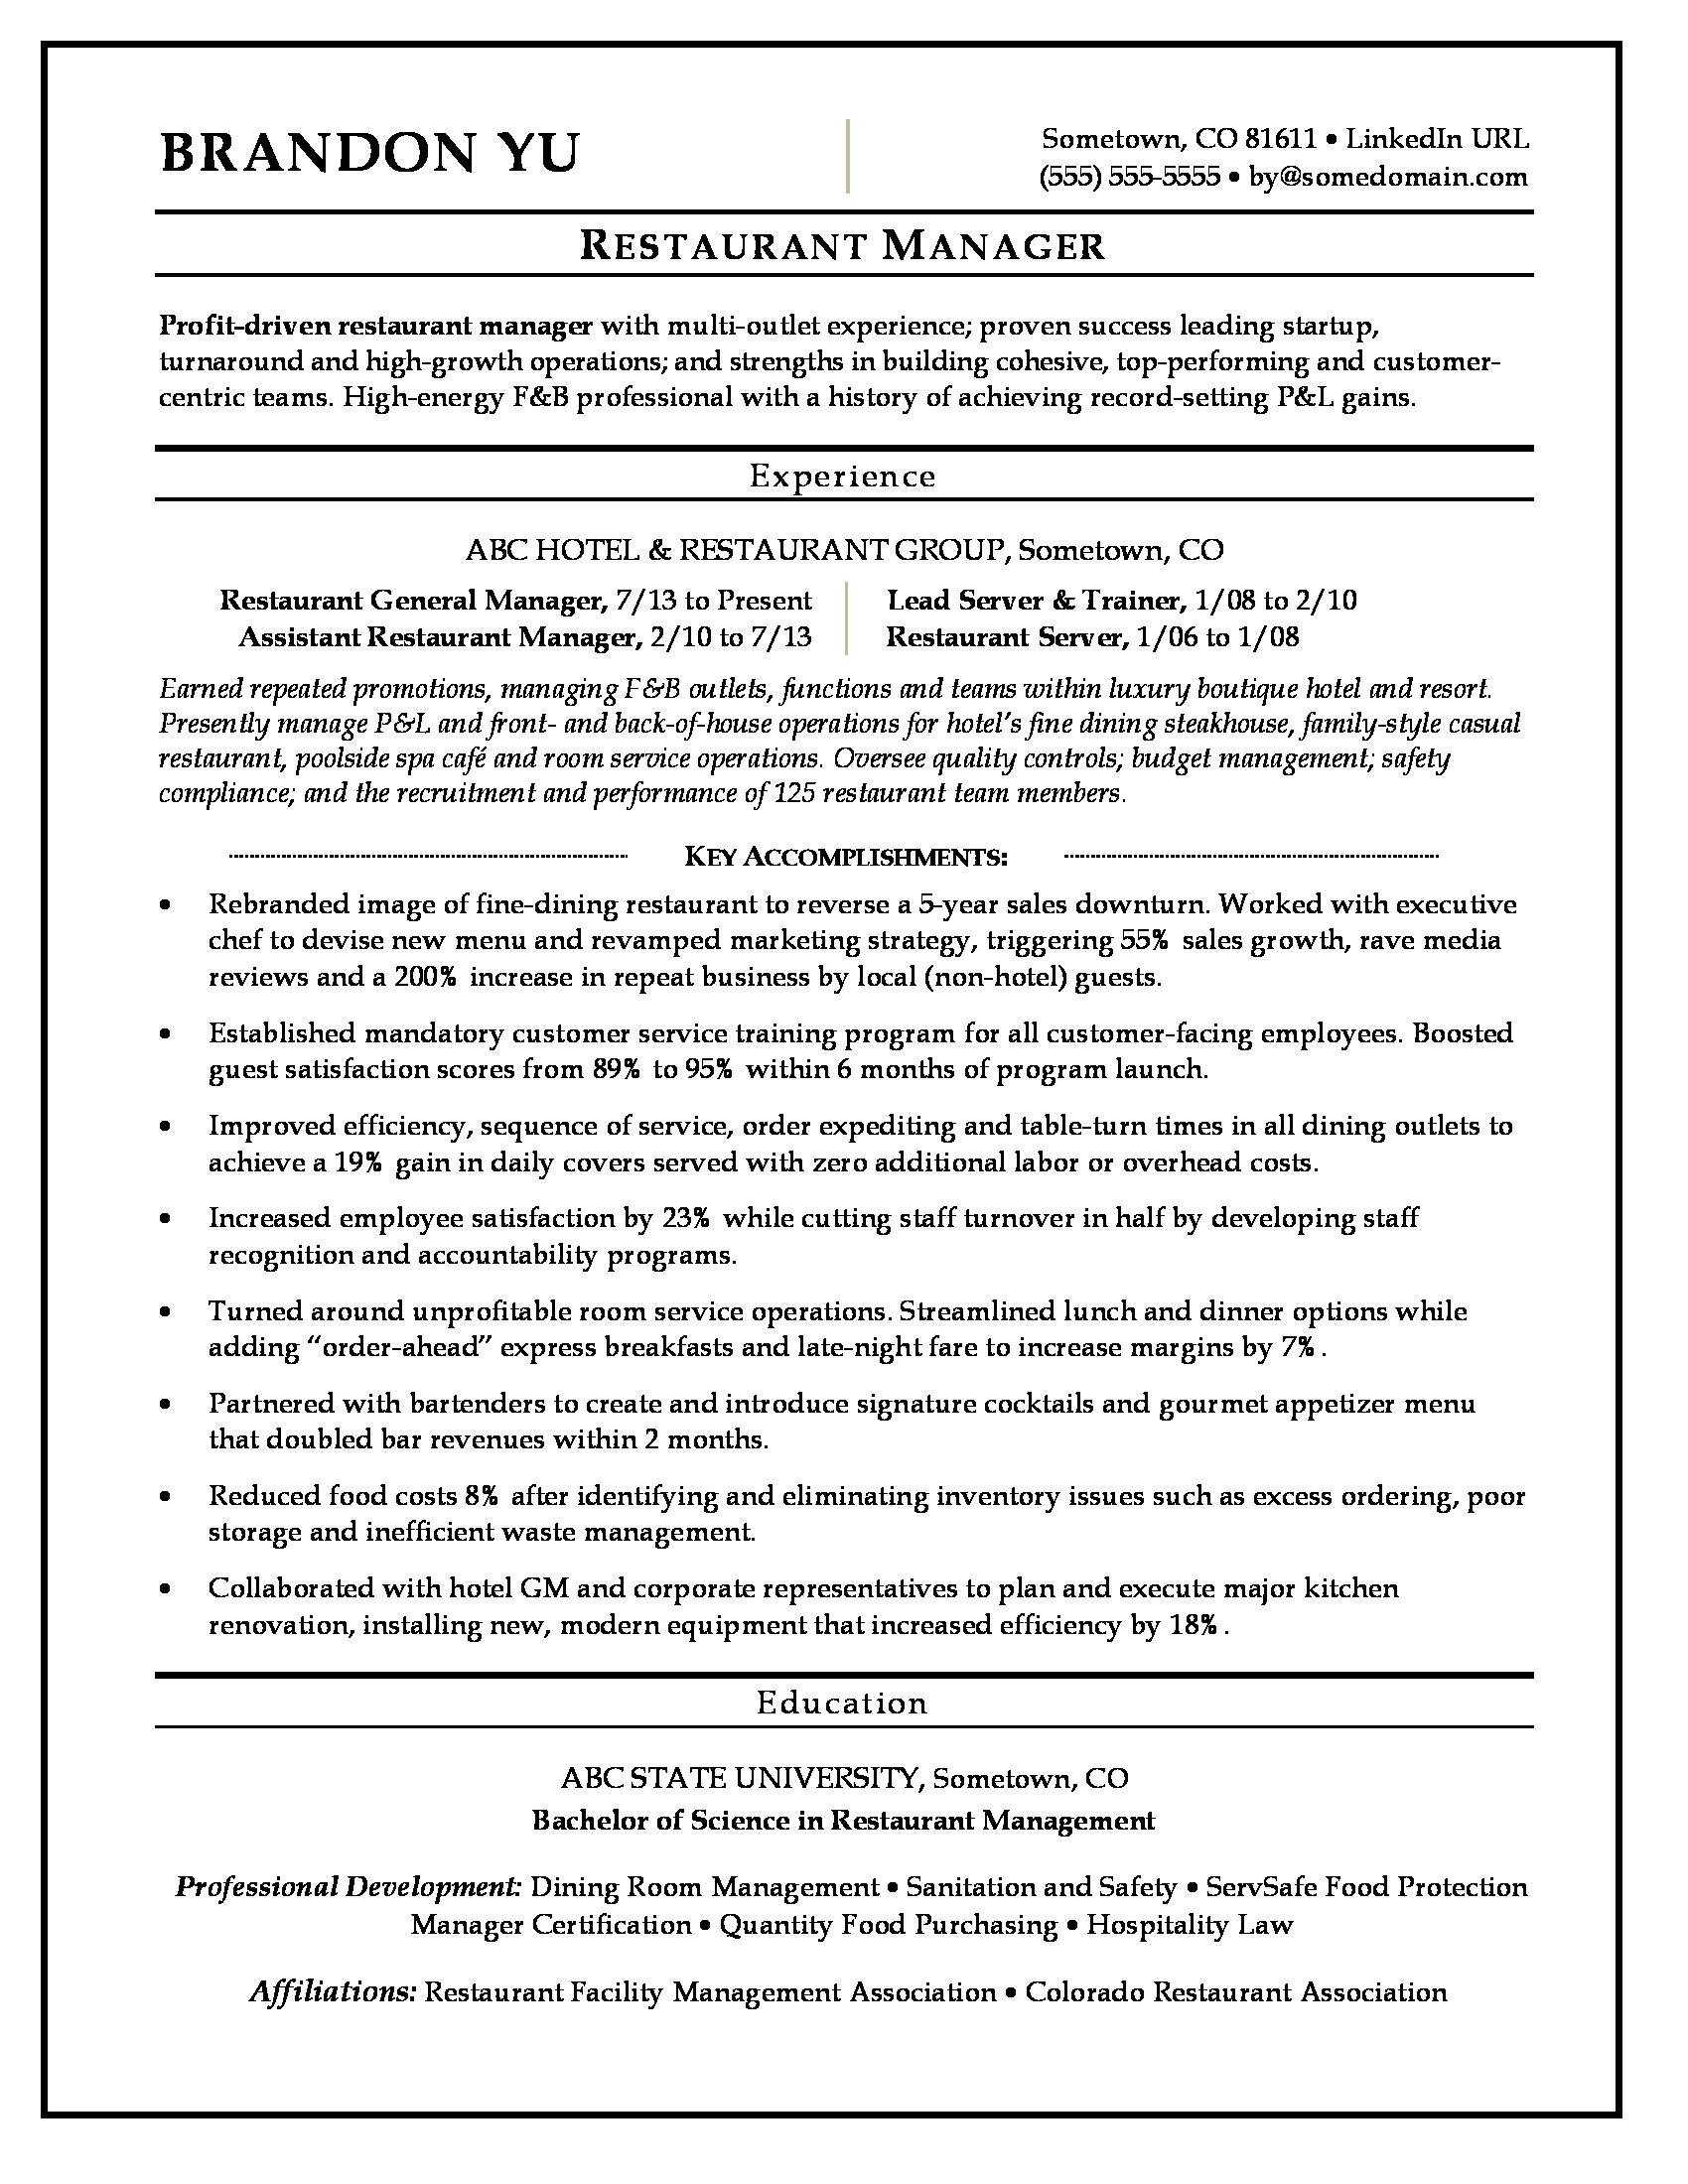 restaurant manager resume sample monster general examples indeed recent college graduate Resume General Manager Resume Examples